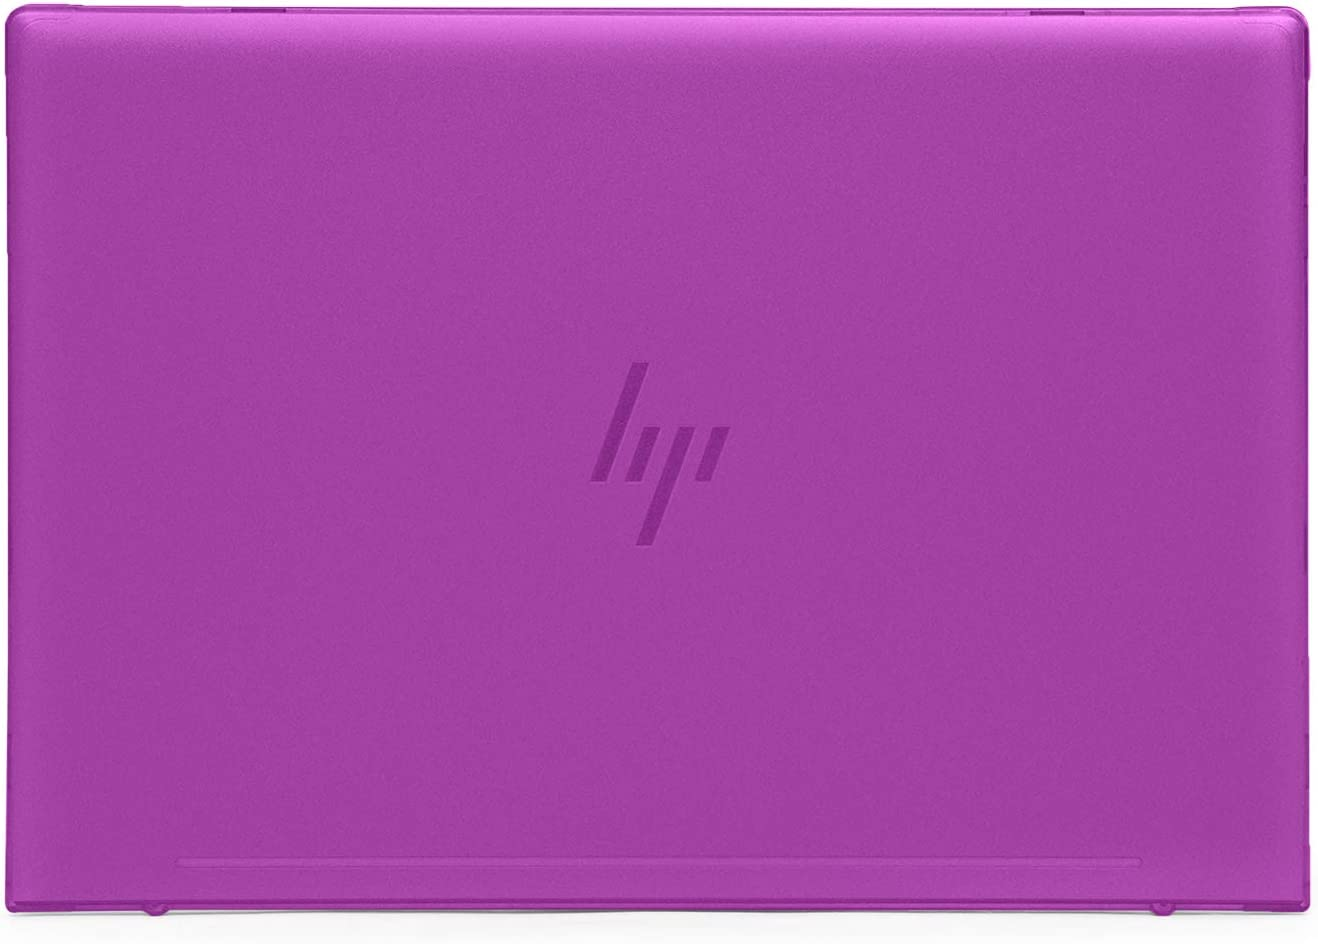 "mCover Hard Shell Case for 13.3"" HP Envy 13-AHxxxx / 13-AQ0000 Series (NOT Compatible with Other HP Series) Laptop PCs - Envy13-AH-AQ Purple"